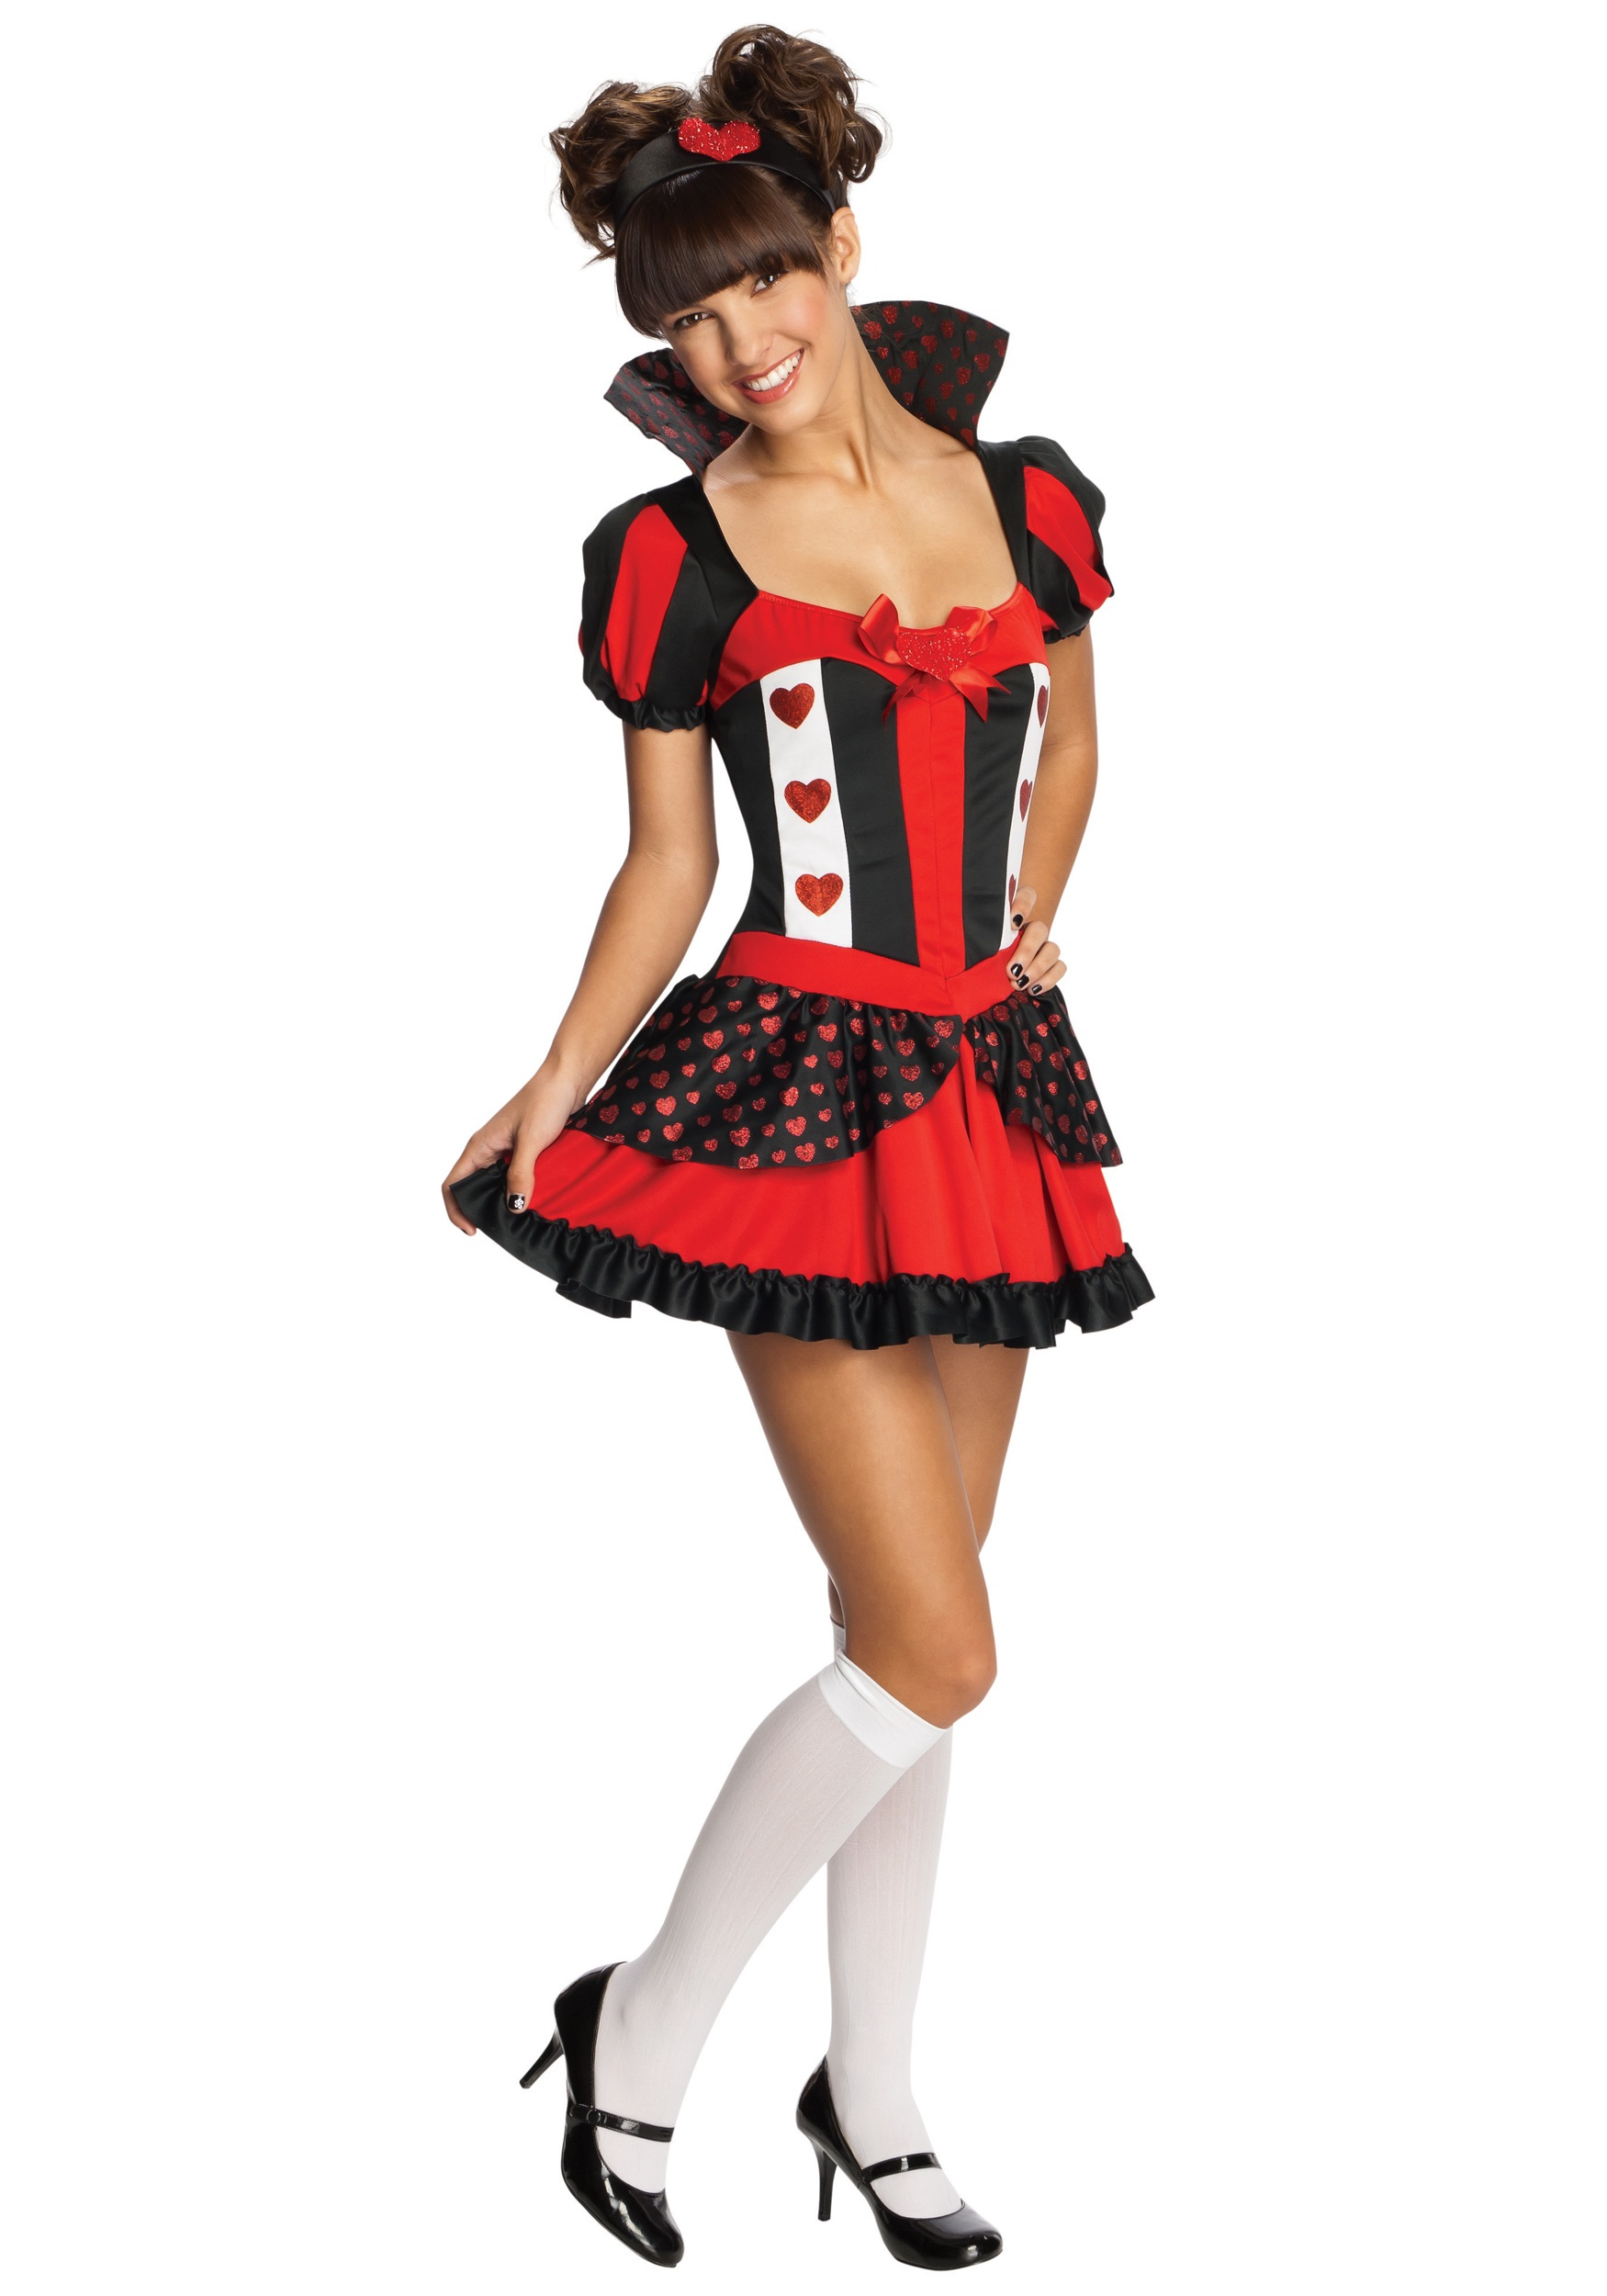 Pocahontas Kostüm Selber Machen Great It 39s Sexy Halloween Costume Time